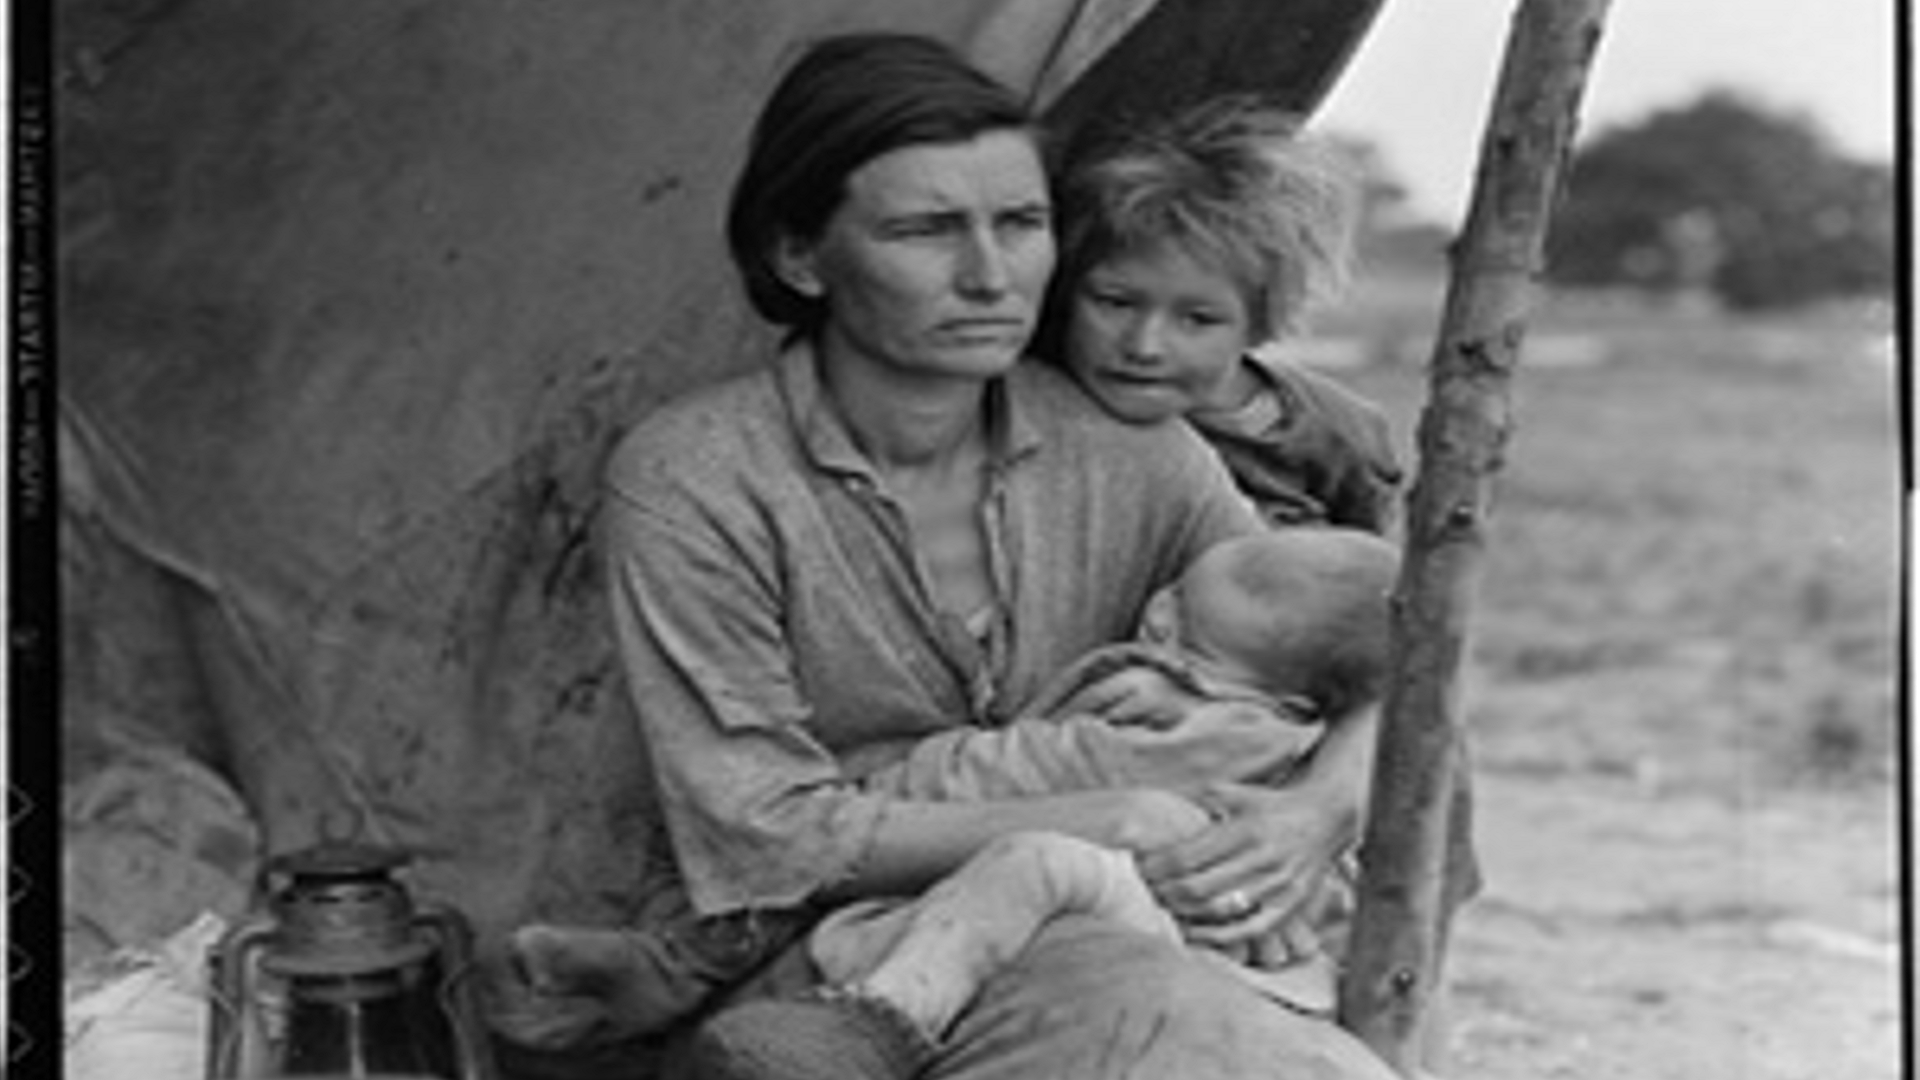 Migrant Mother: Documenting American Life in the 1930s Through Photography